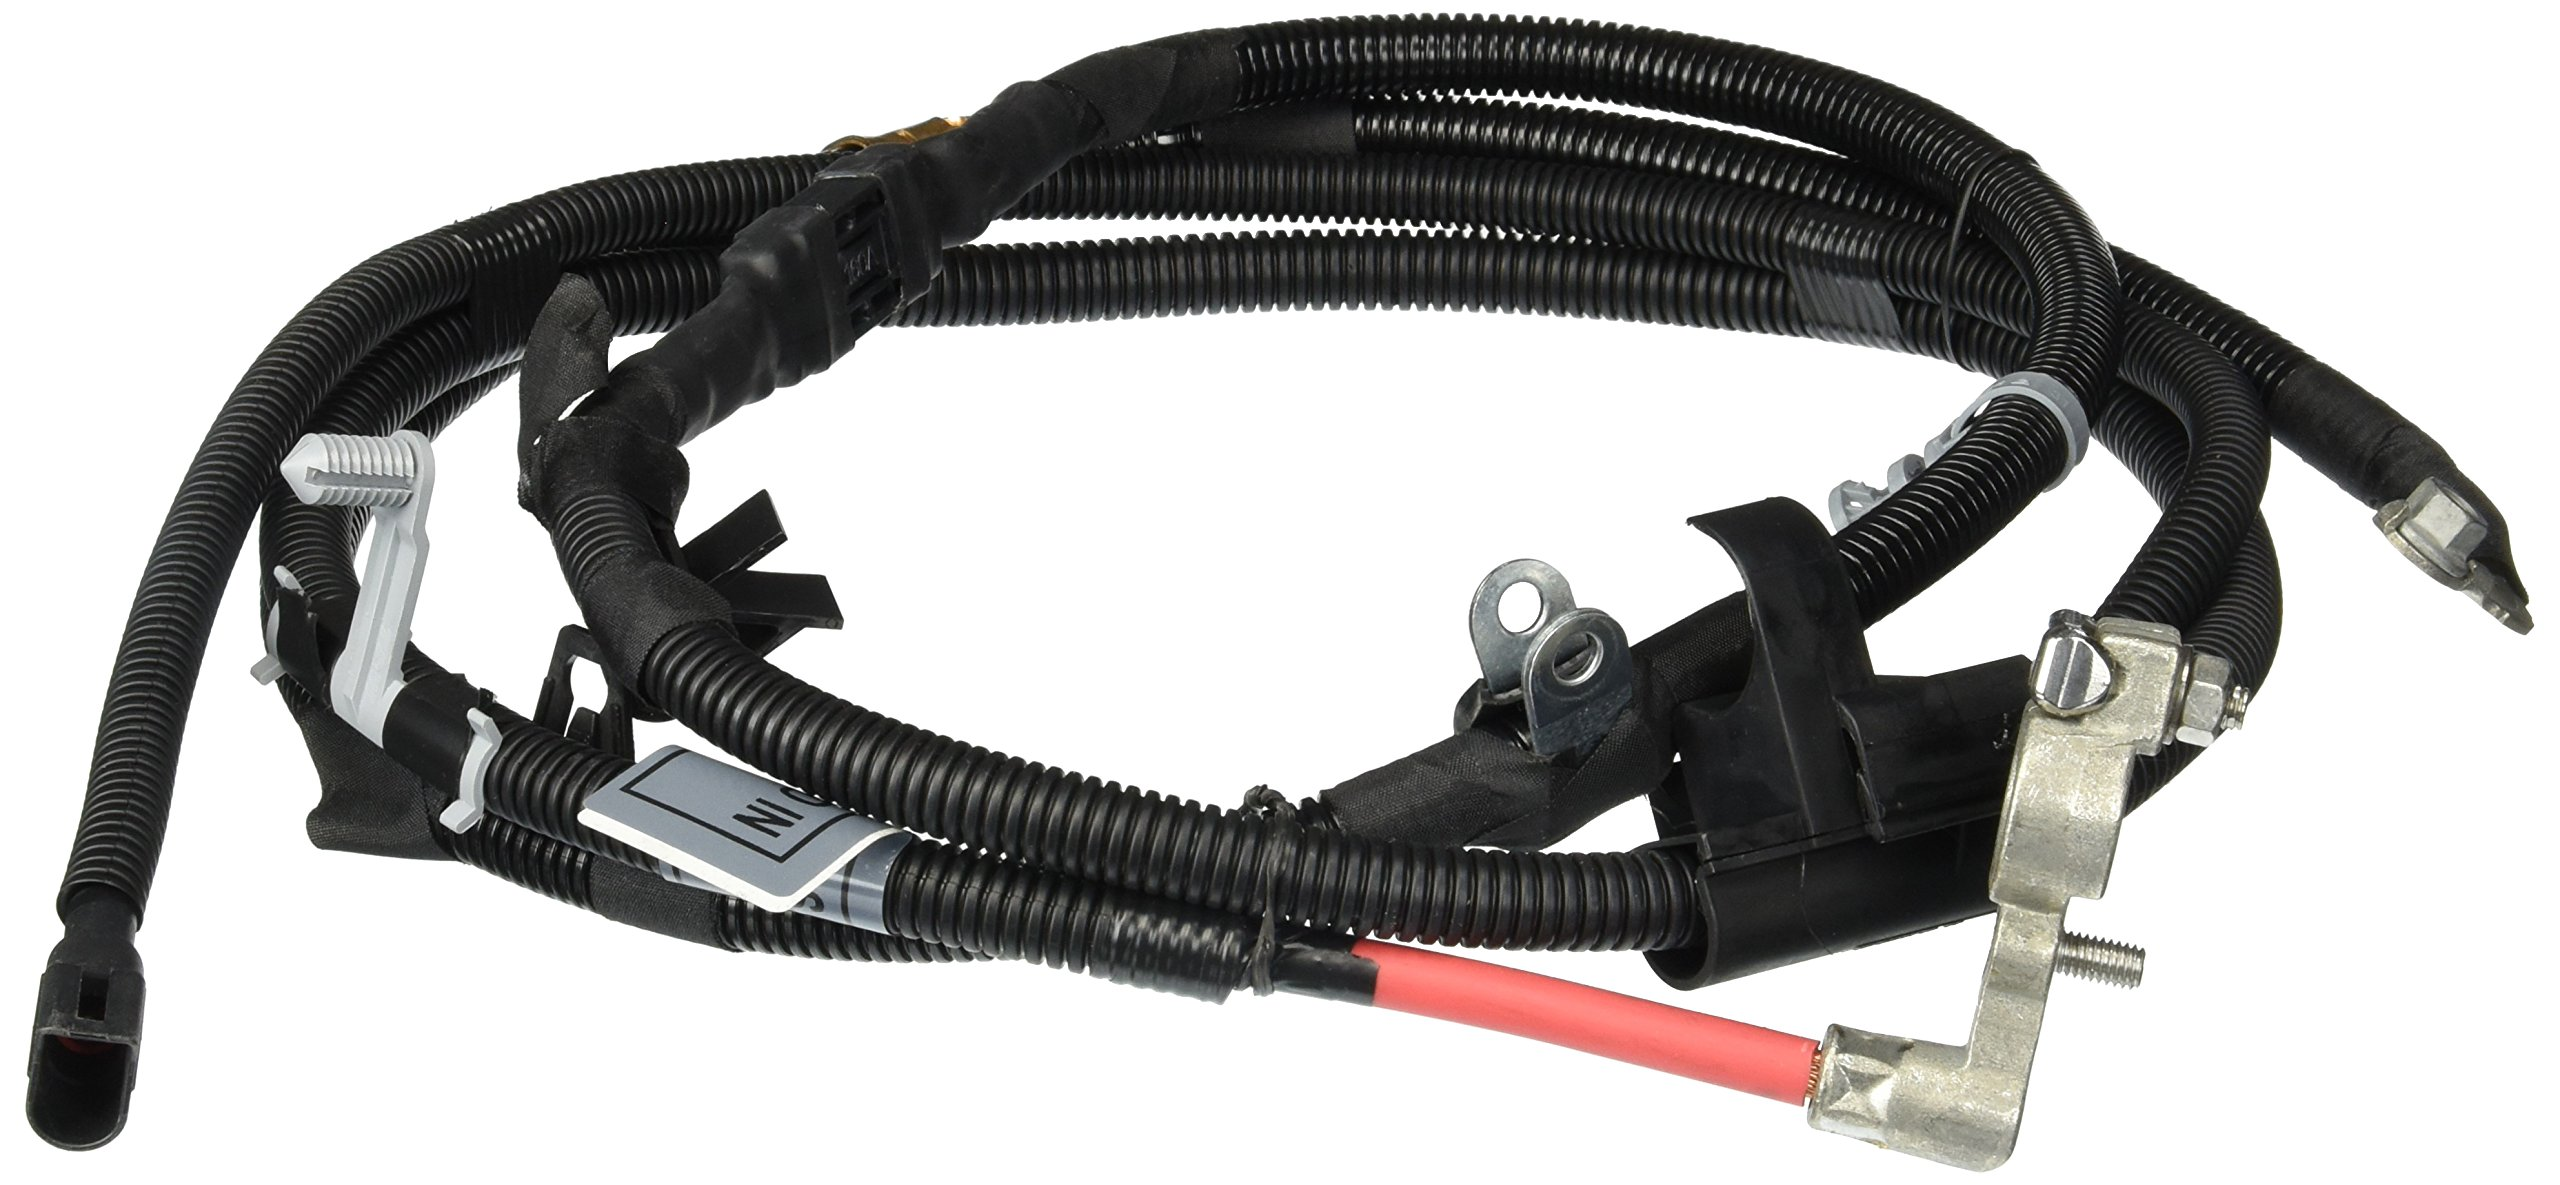 Motorcraft WC95823 Switch to Starter Cable by Motorcraft